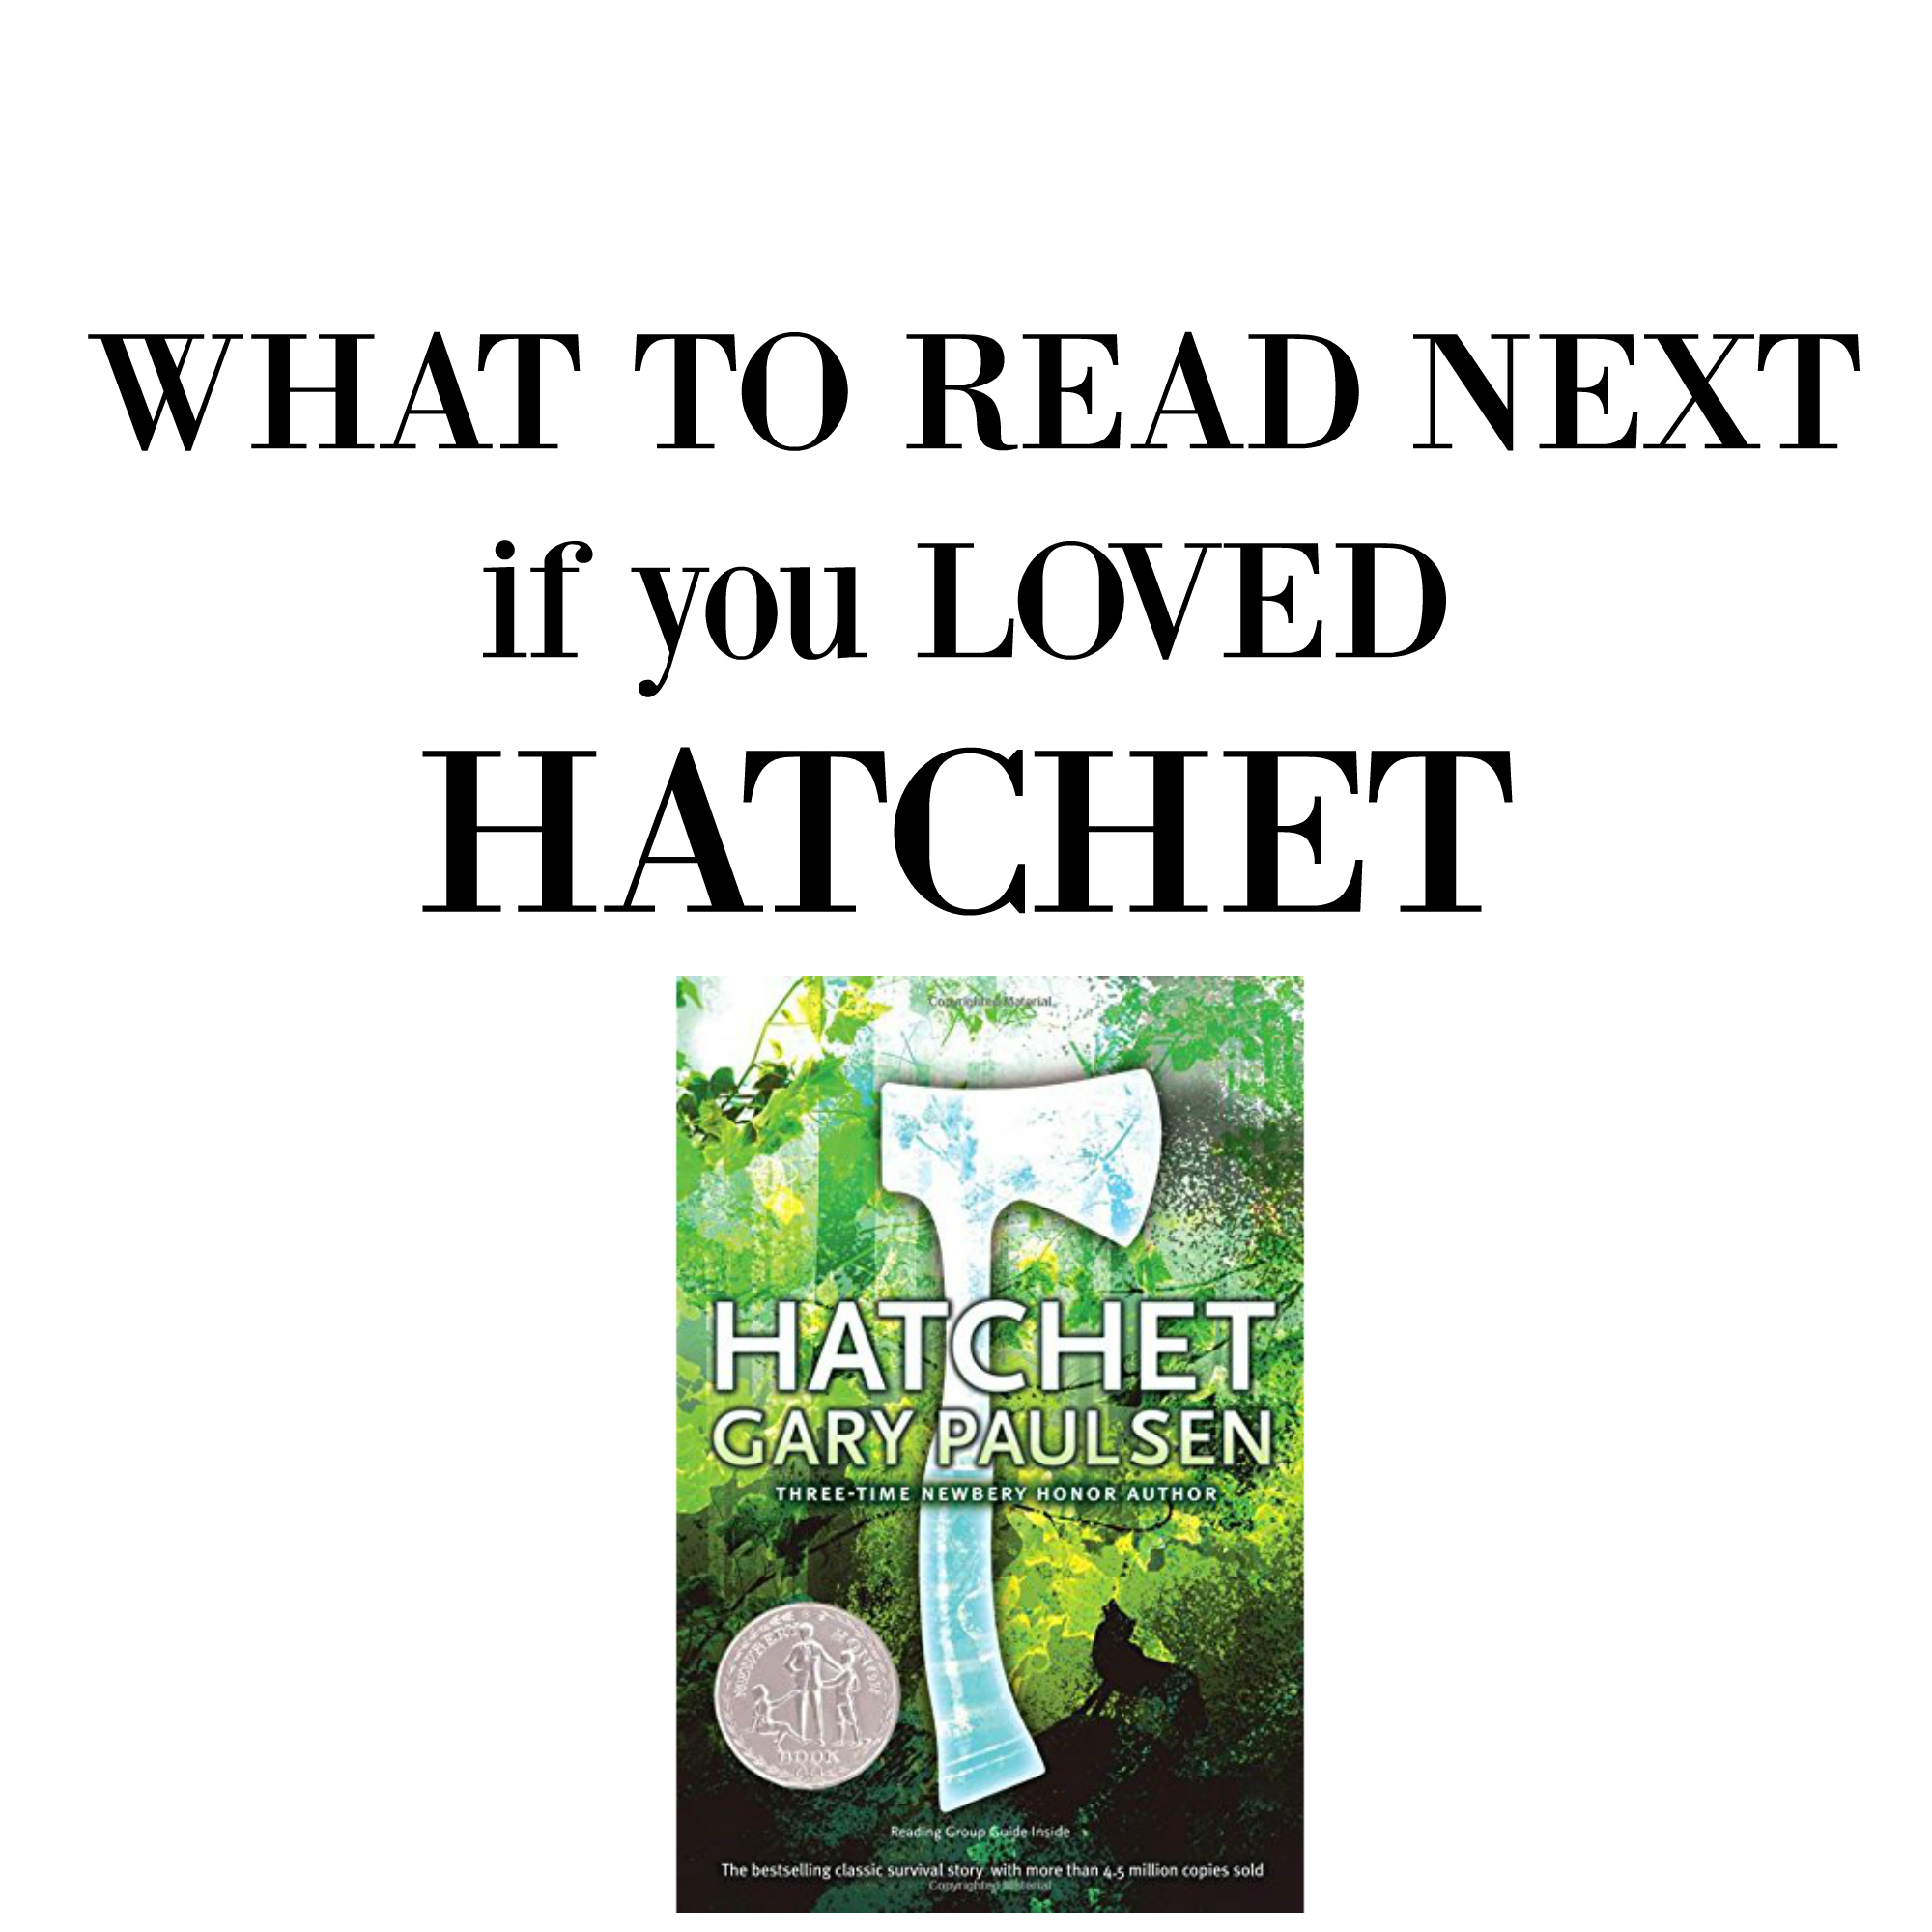 If A Serious Adventure Of Survival And Outdoor Mystique Is Your Favorite Kind Story Hatchet Tops List Check Out These Other Engrossing Tales